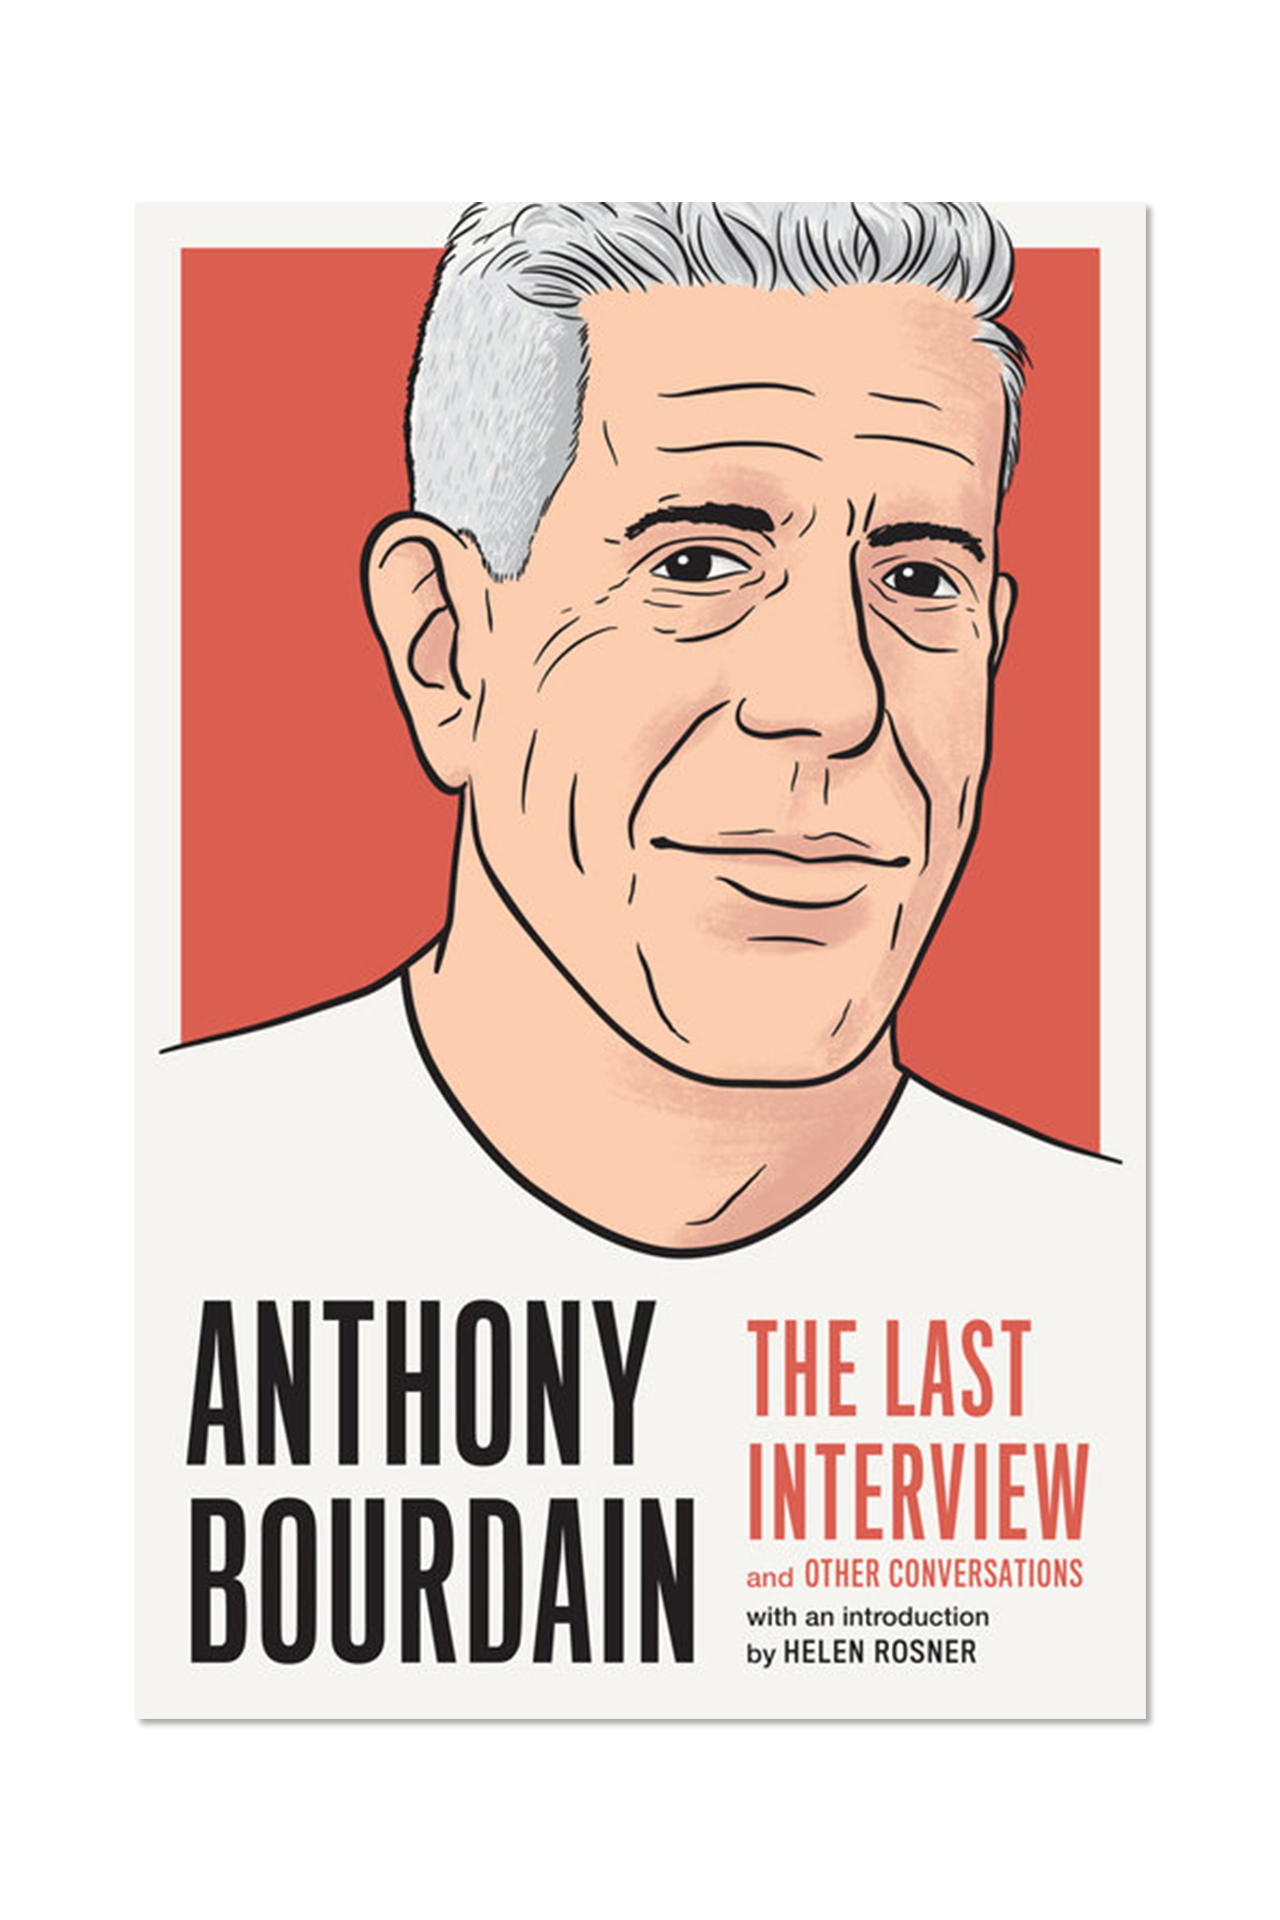 Anthony Bourdain: The Last Interview